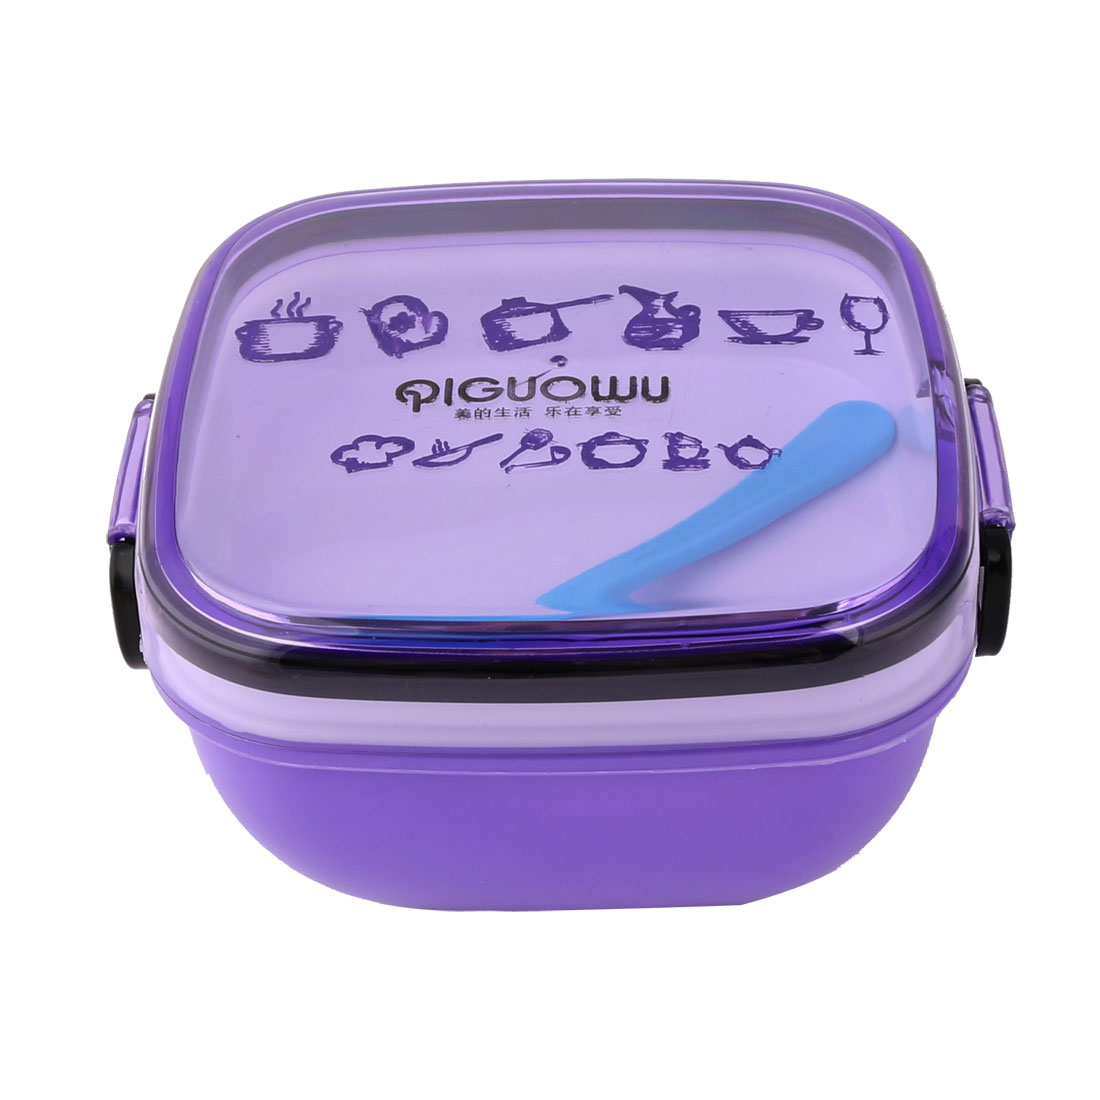 Home Kitchen Travel Plastic Square Shaped Food Container Lunch Box Case Purple